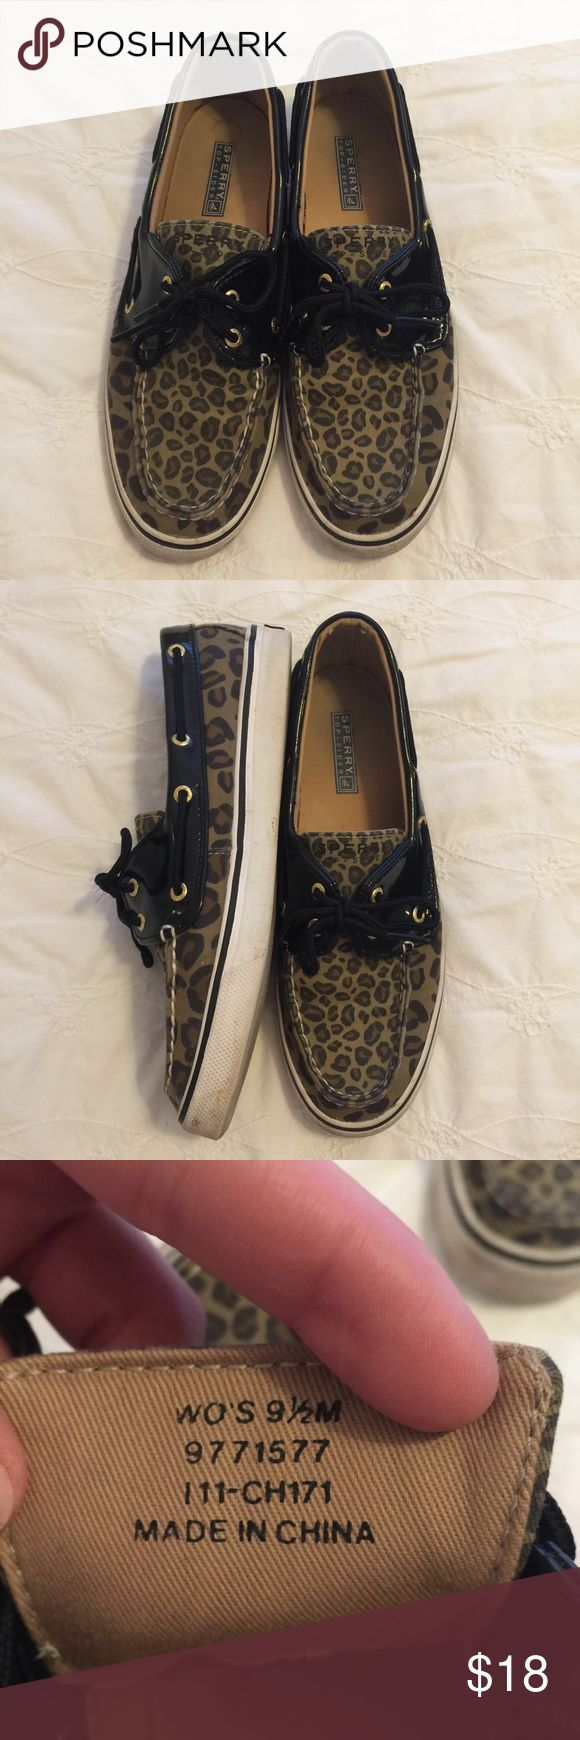 Woman's Leopard Sperrys - 9.5 Woman's Leopard Sperrys - Size 9.5 - sole needs a light cleaning but otherwise quality used condition Sperry Shoes